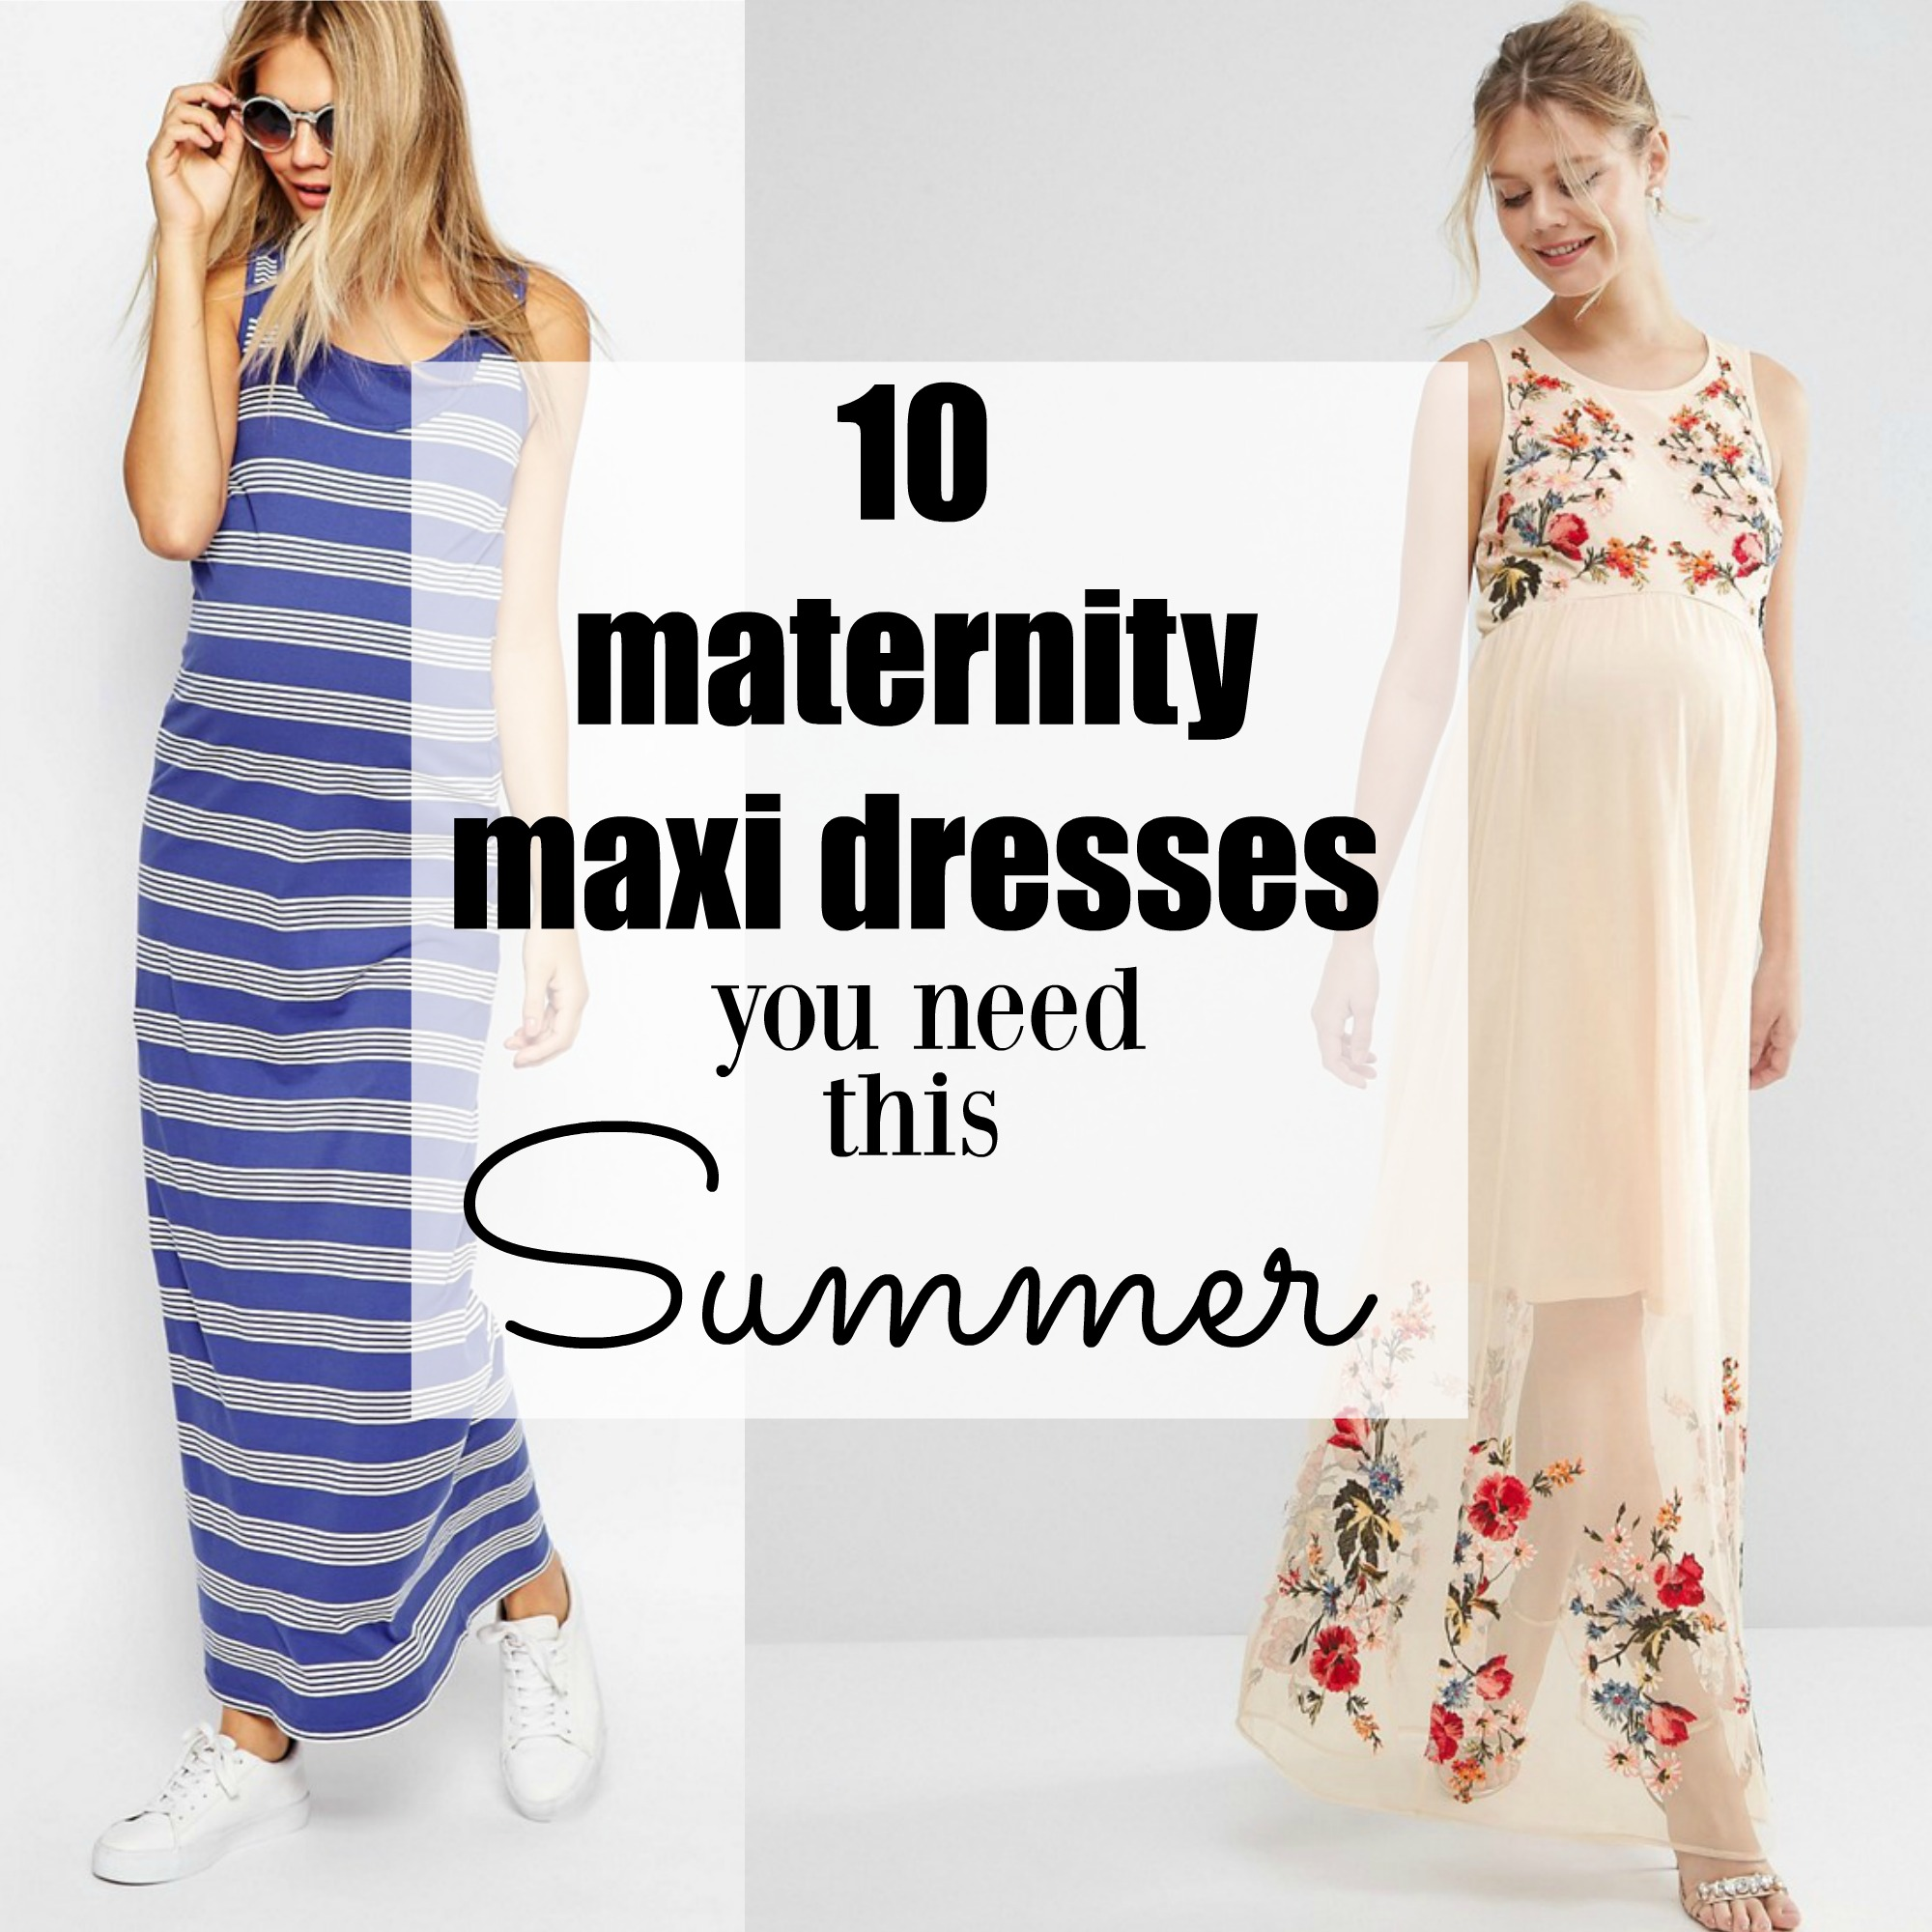 10 Maternity Maxi Dresses you need this Summer